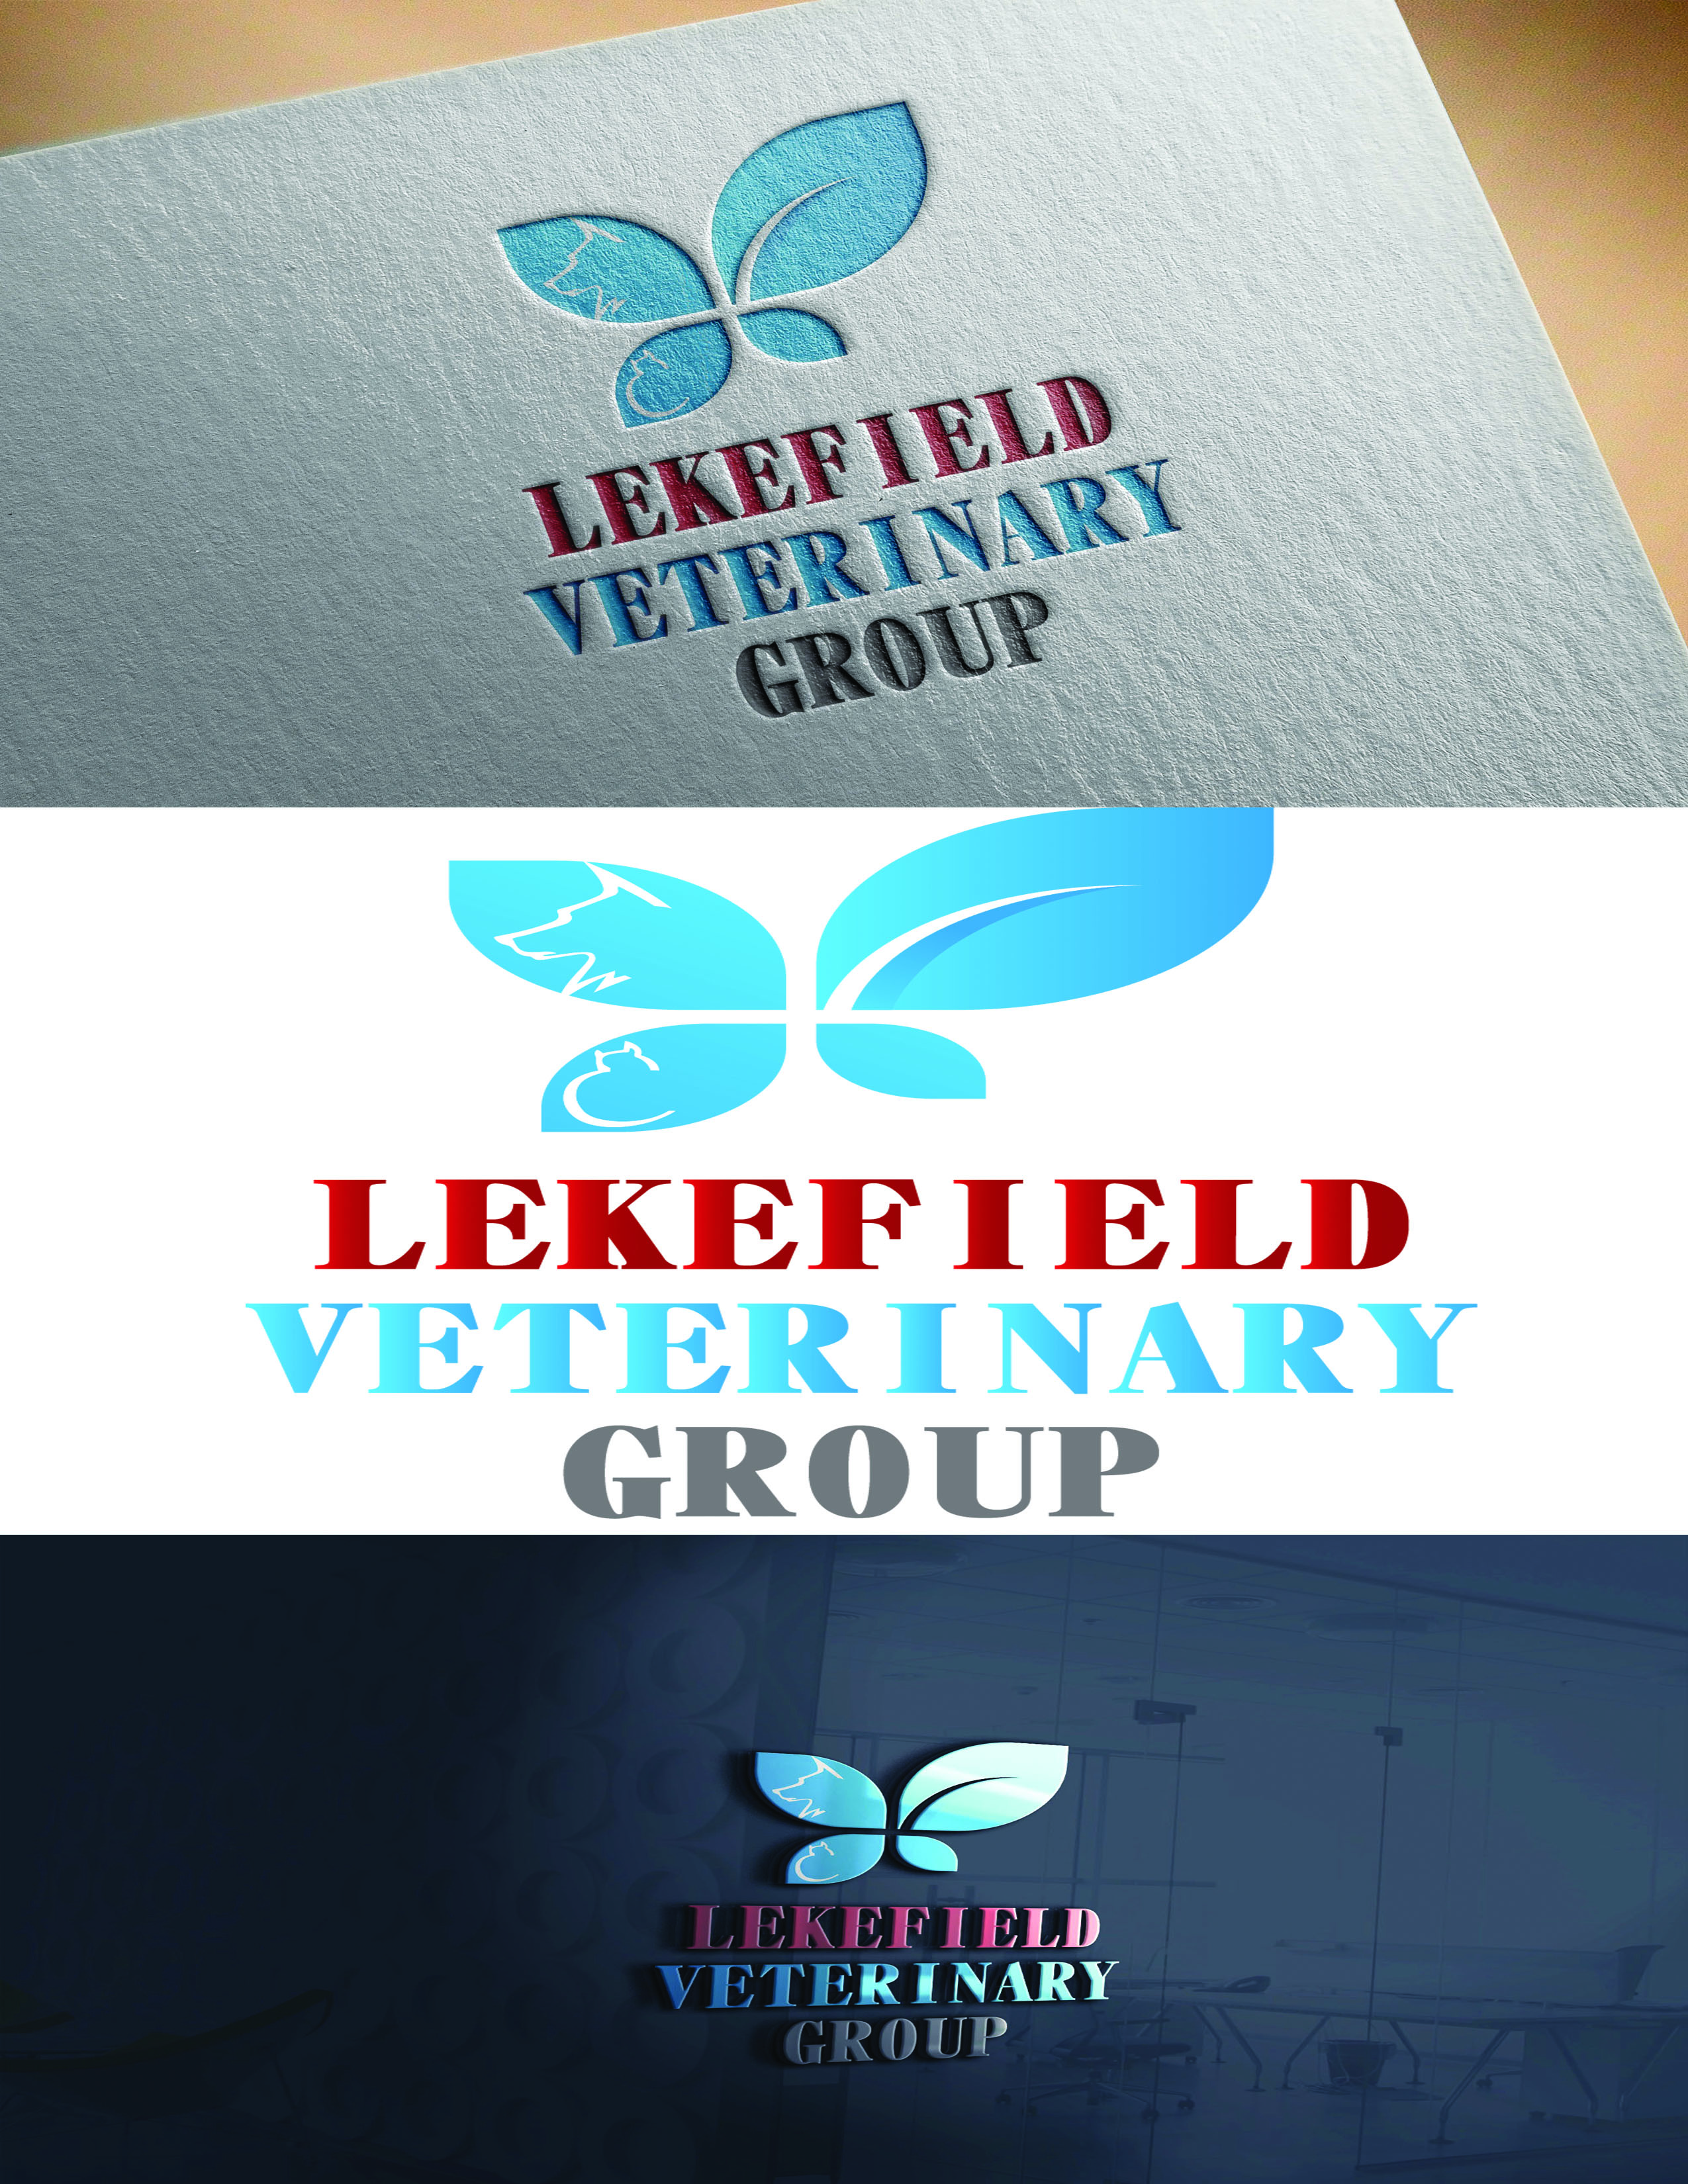 Logo Design by Umair ahmed Iqbal - Entry No. 40 in the Logo Design Contest Inspiring Logo Design for Lakefield Veterinary Group.